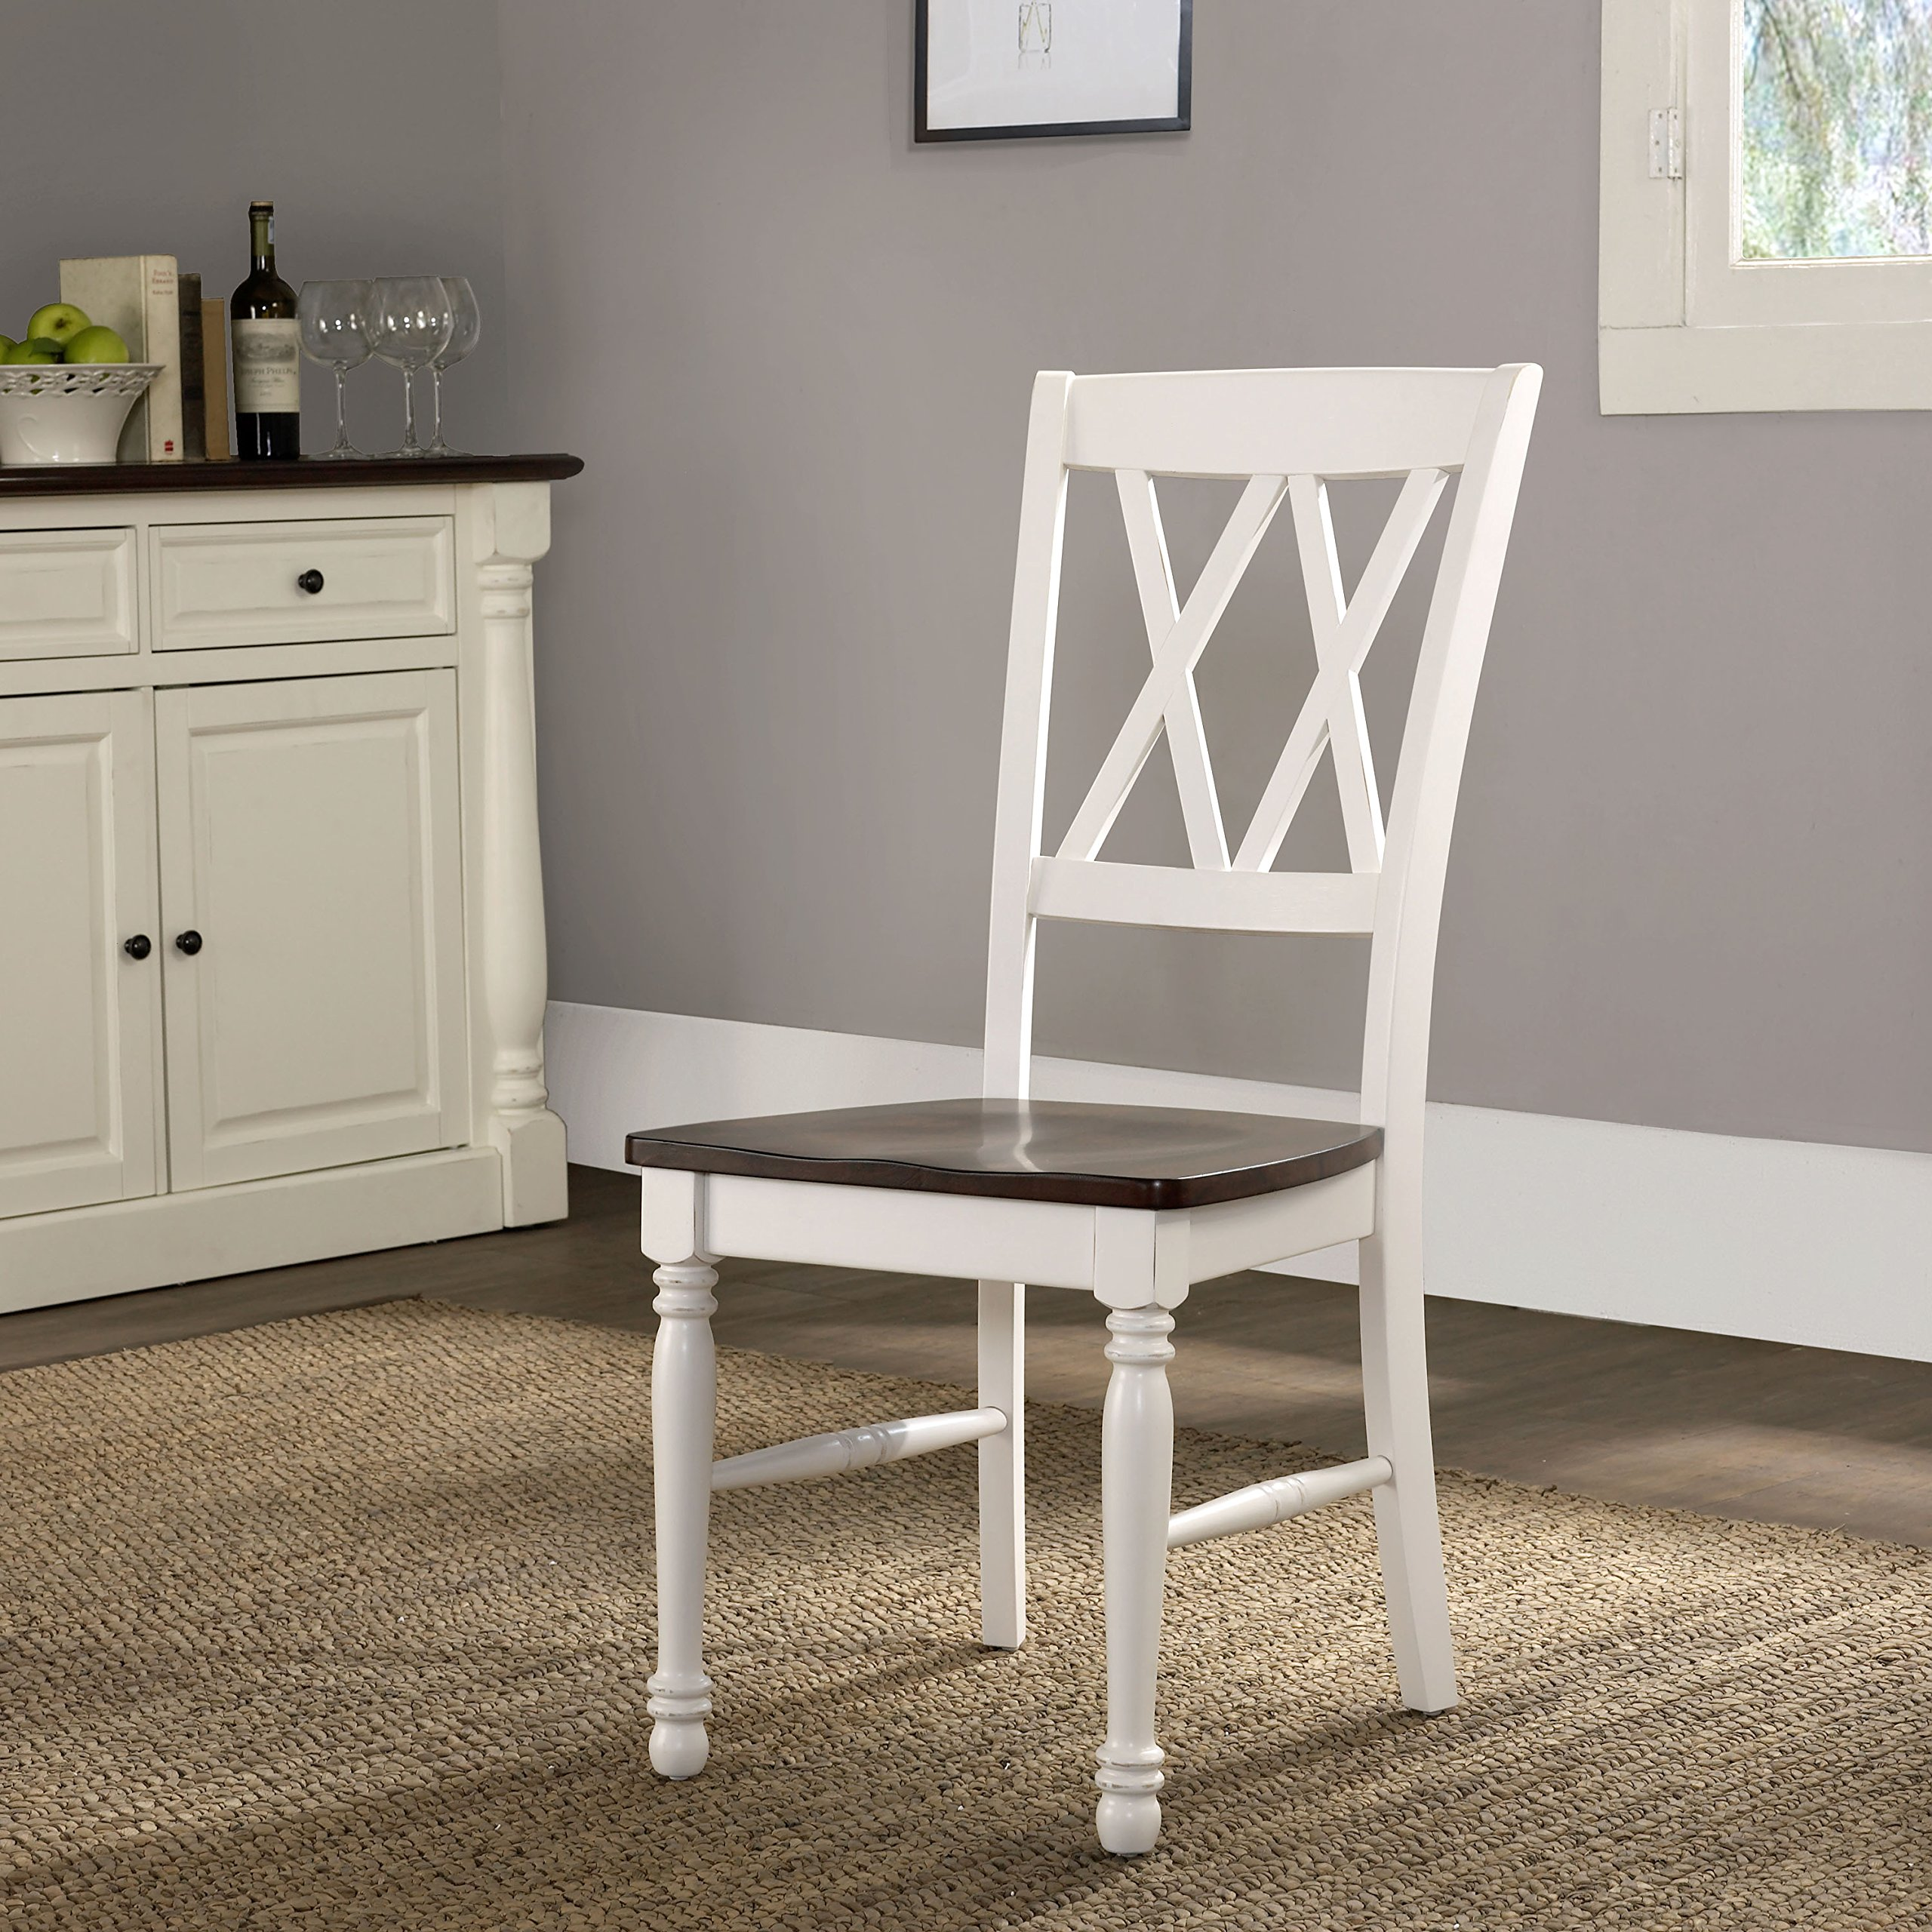 Crosley Furniture CF501018-WH Shelby Dining Chairs (Set of 2), White by Crosley Furniture (Image #9)